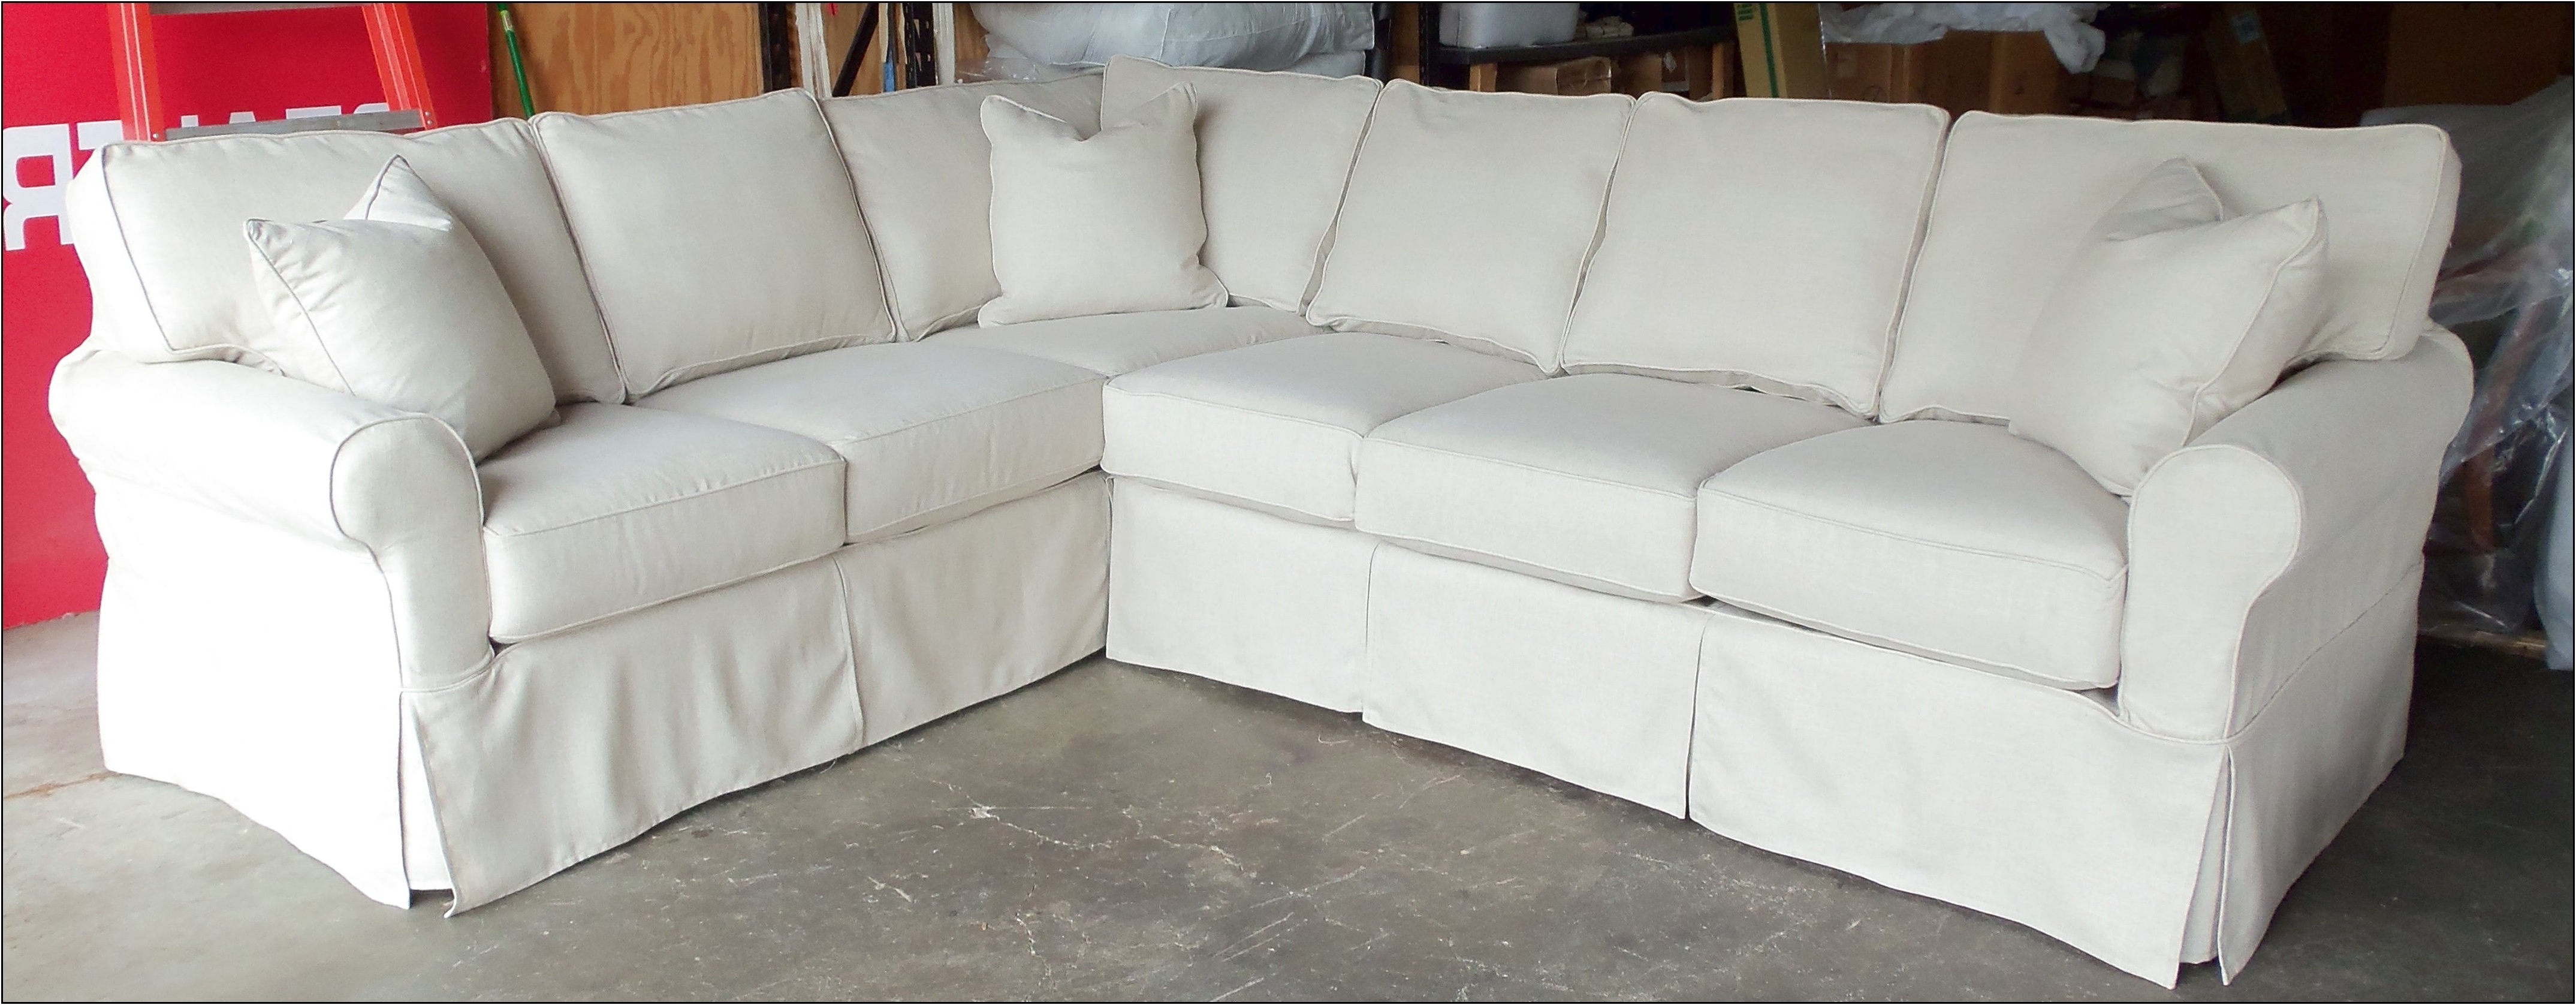 White Sectional Sofas Throughout Most Recent Awesome Cheap White Sectional Sofa 21 On Lazyboy Sectional Sofas (View 13 of 20)